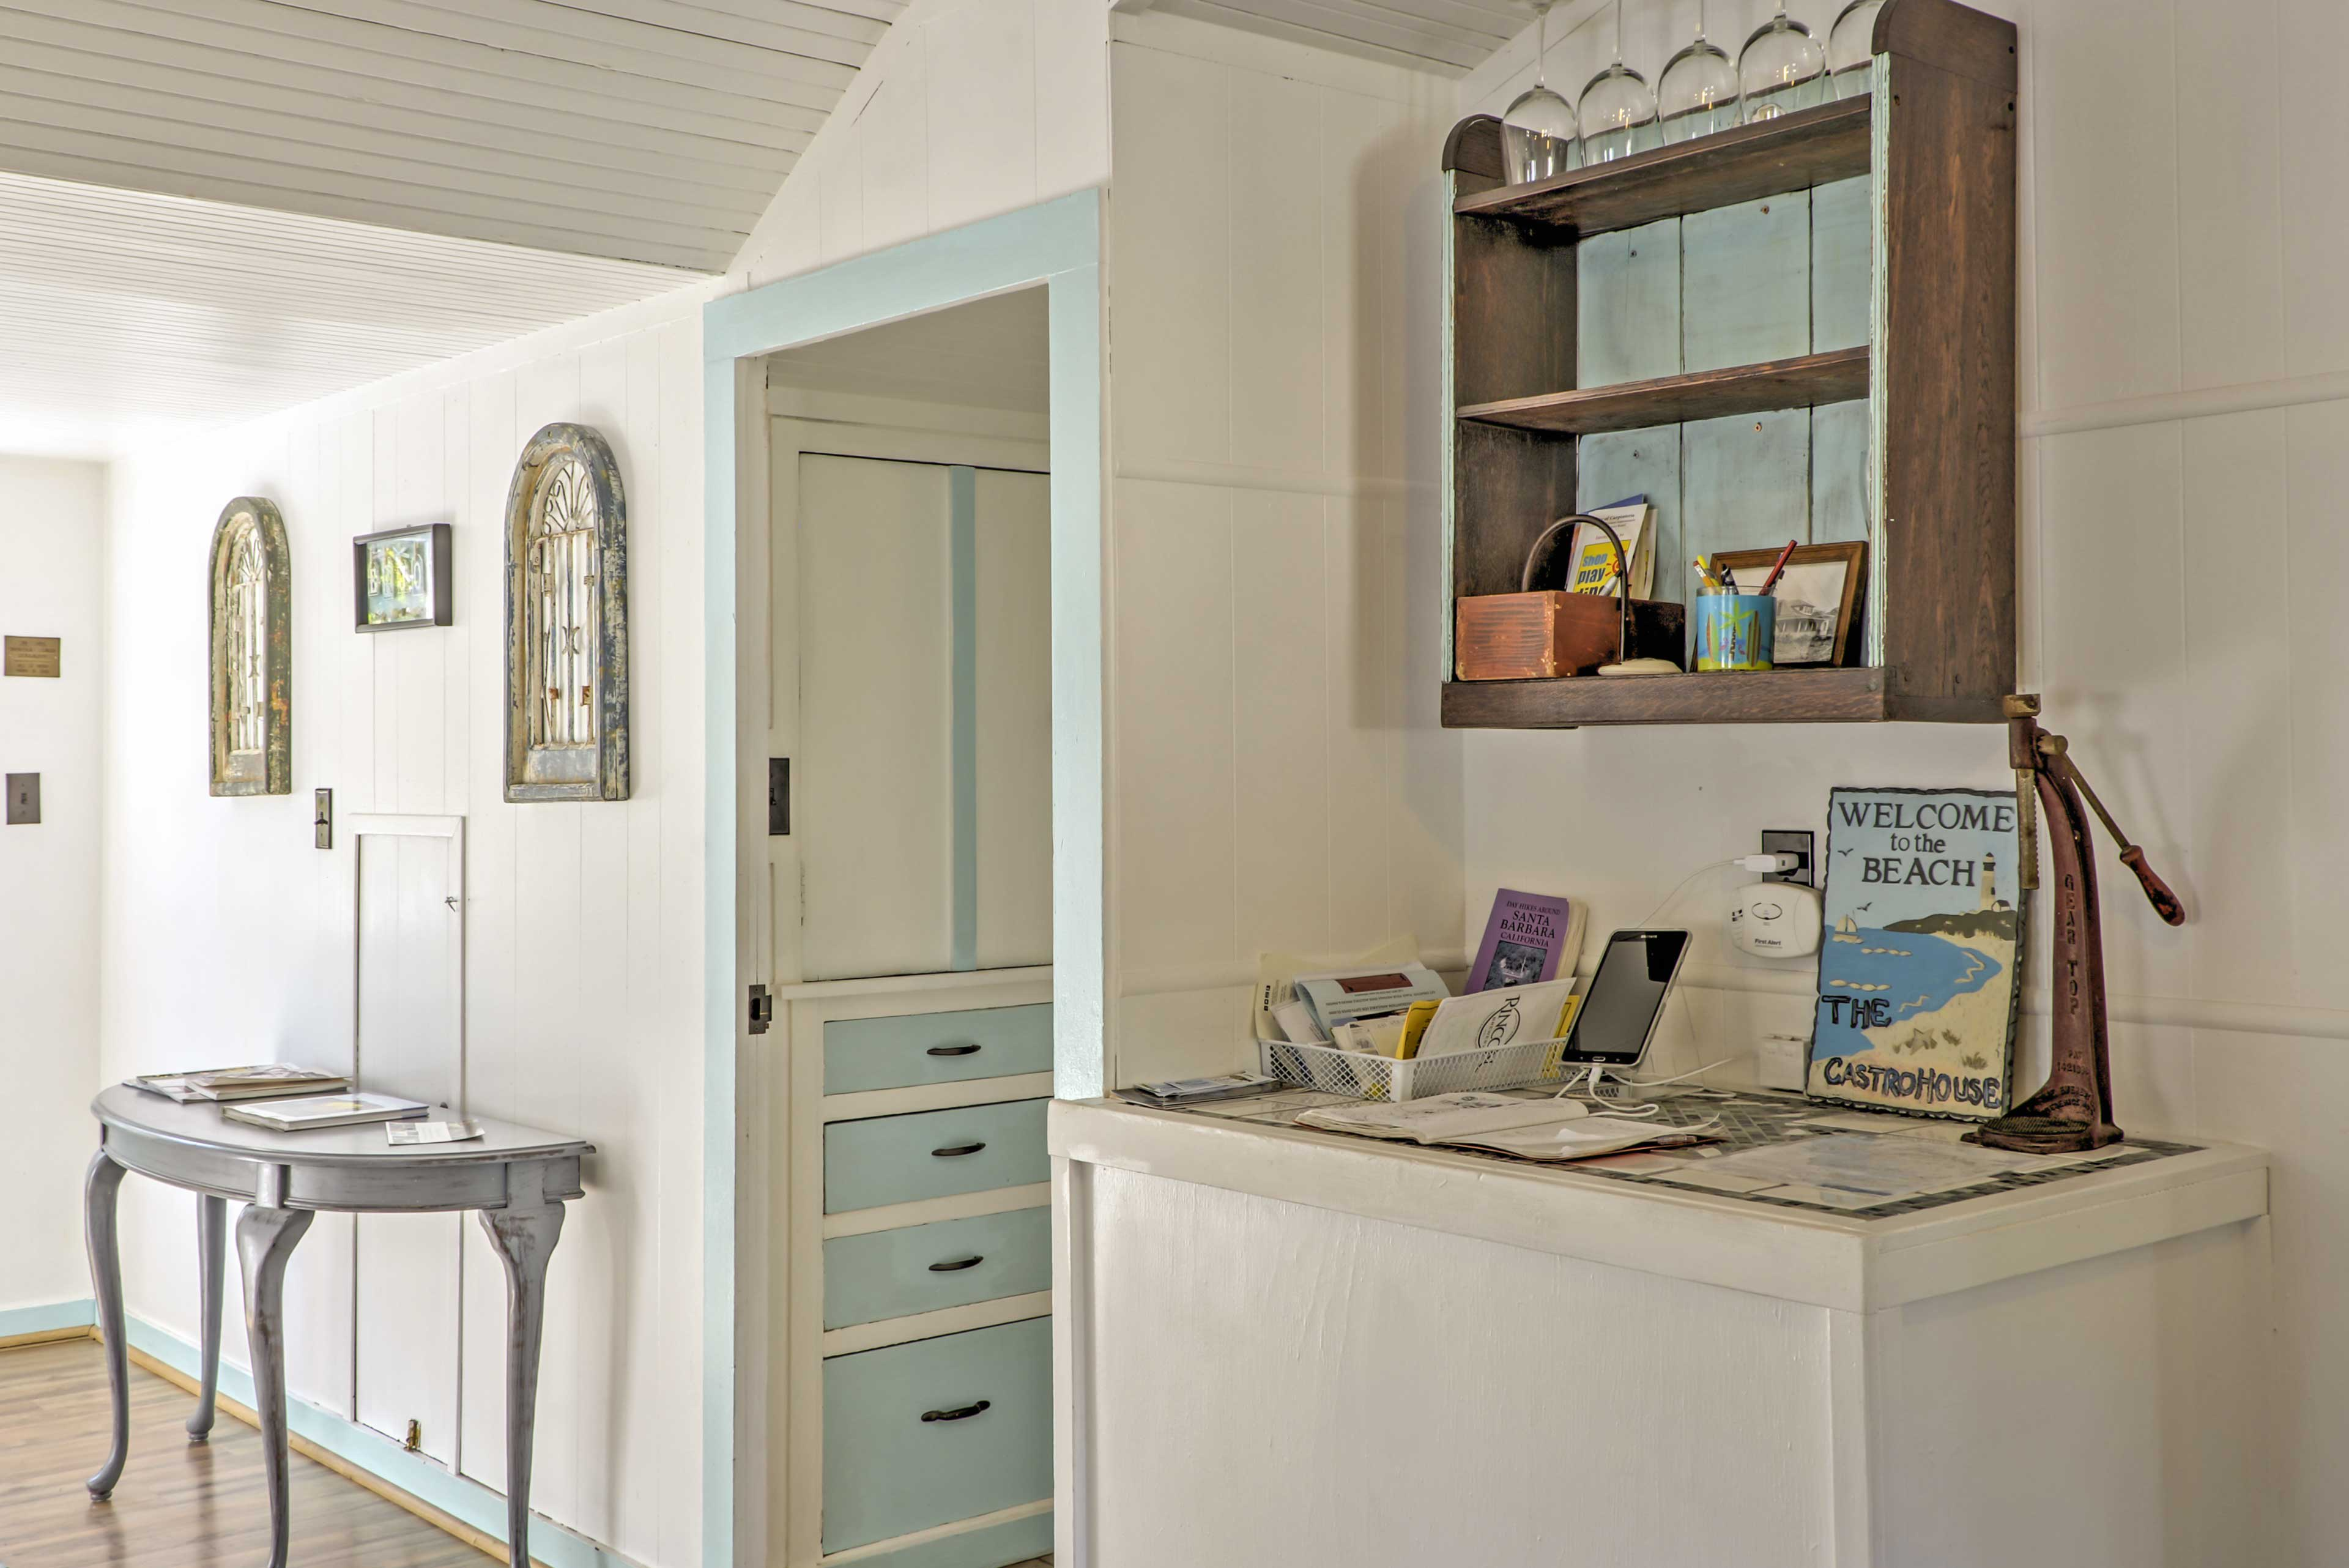 This home is brimming with shabby chic charm!